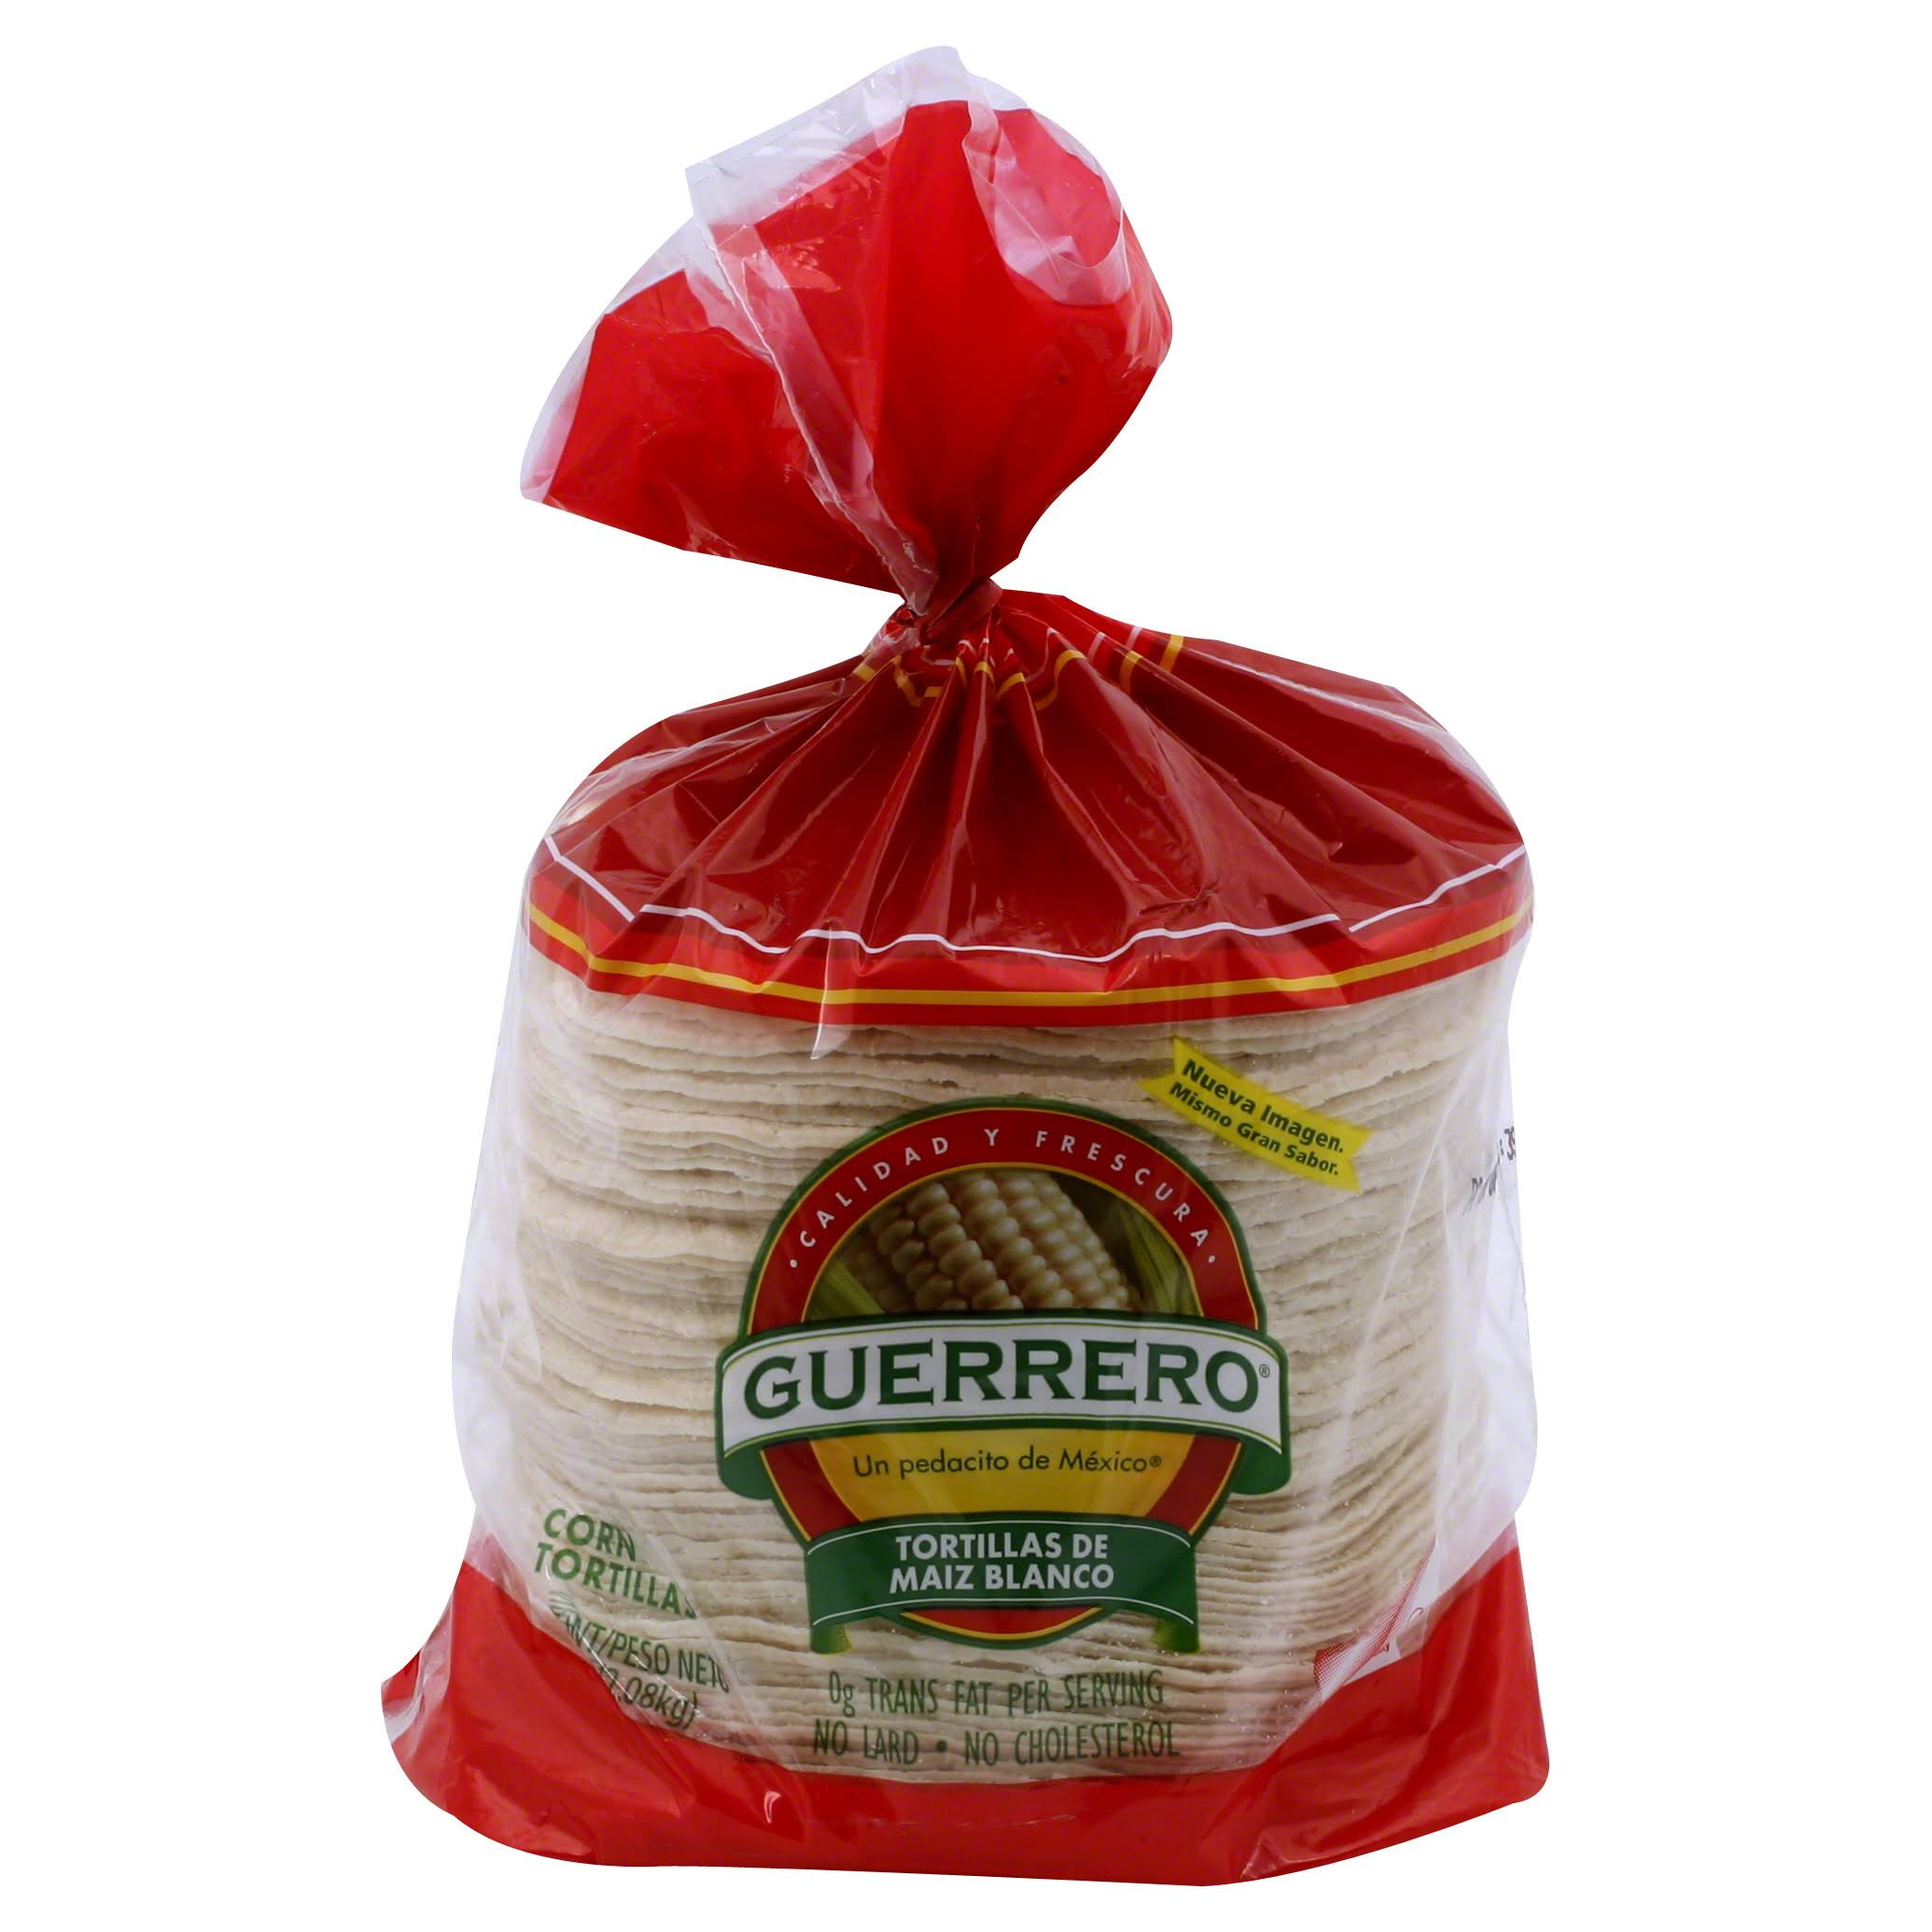 Guerrero Corn Tortillas - 80ct, 66.56oz